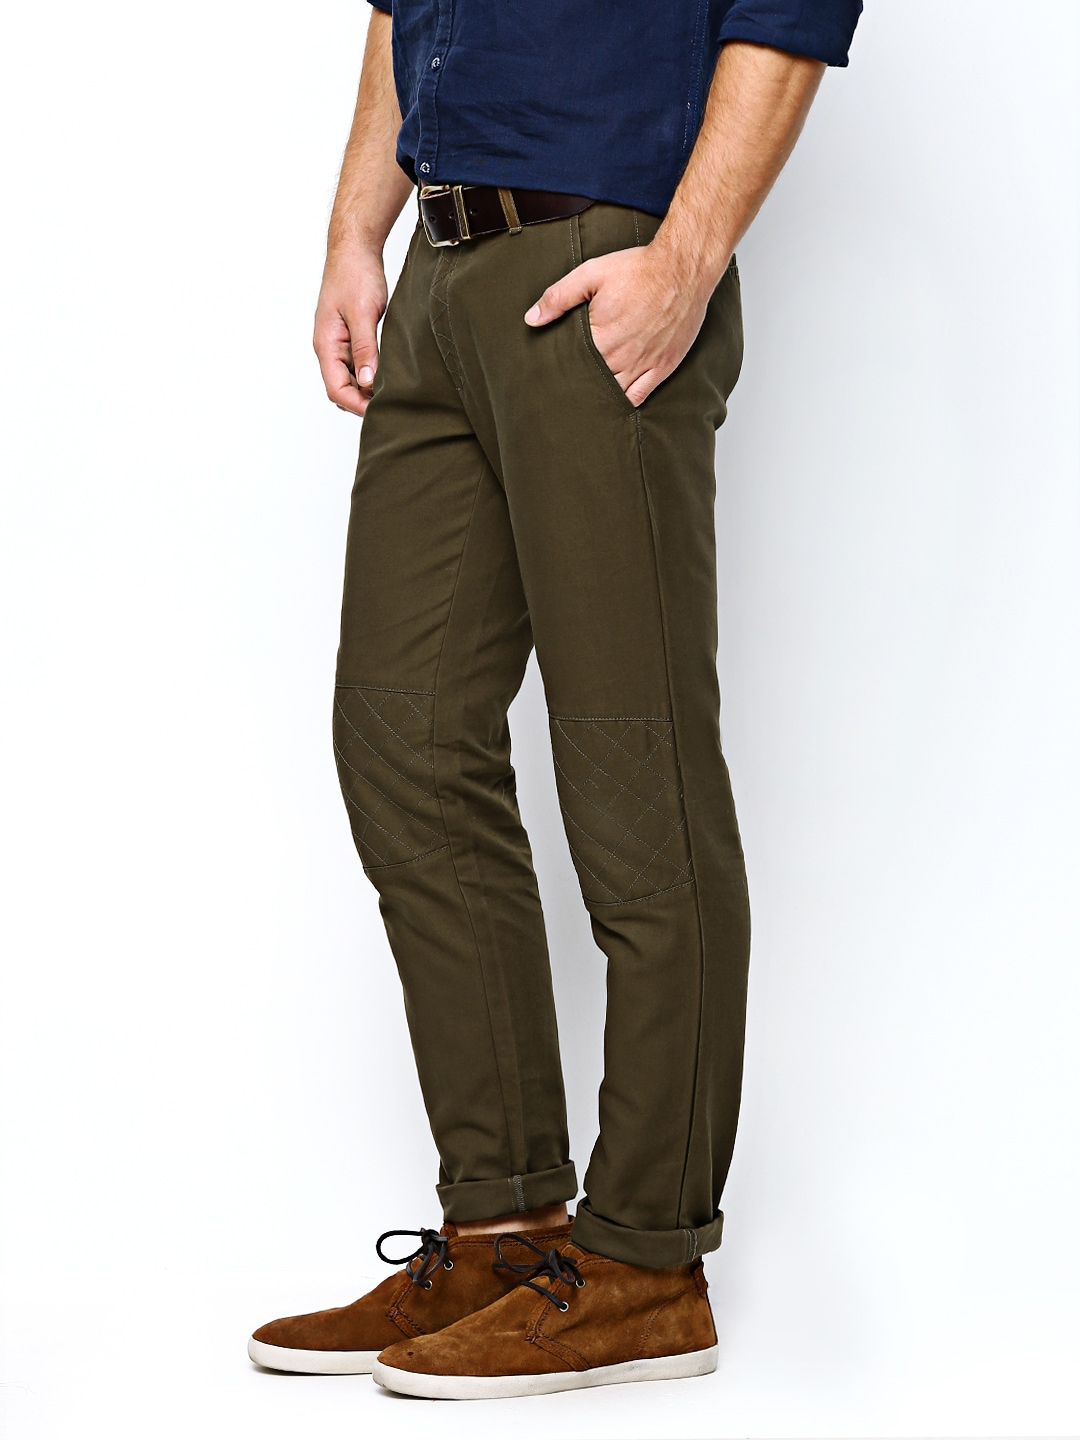 I am trying to find tops for orphan BR casual pants from a couple of seasons ago - they are fab skinny leg dark olive pants with back flap pockets.